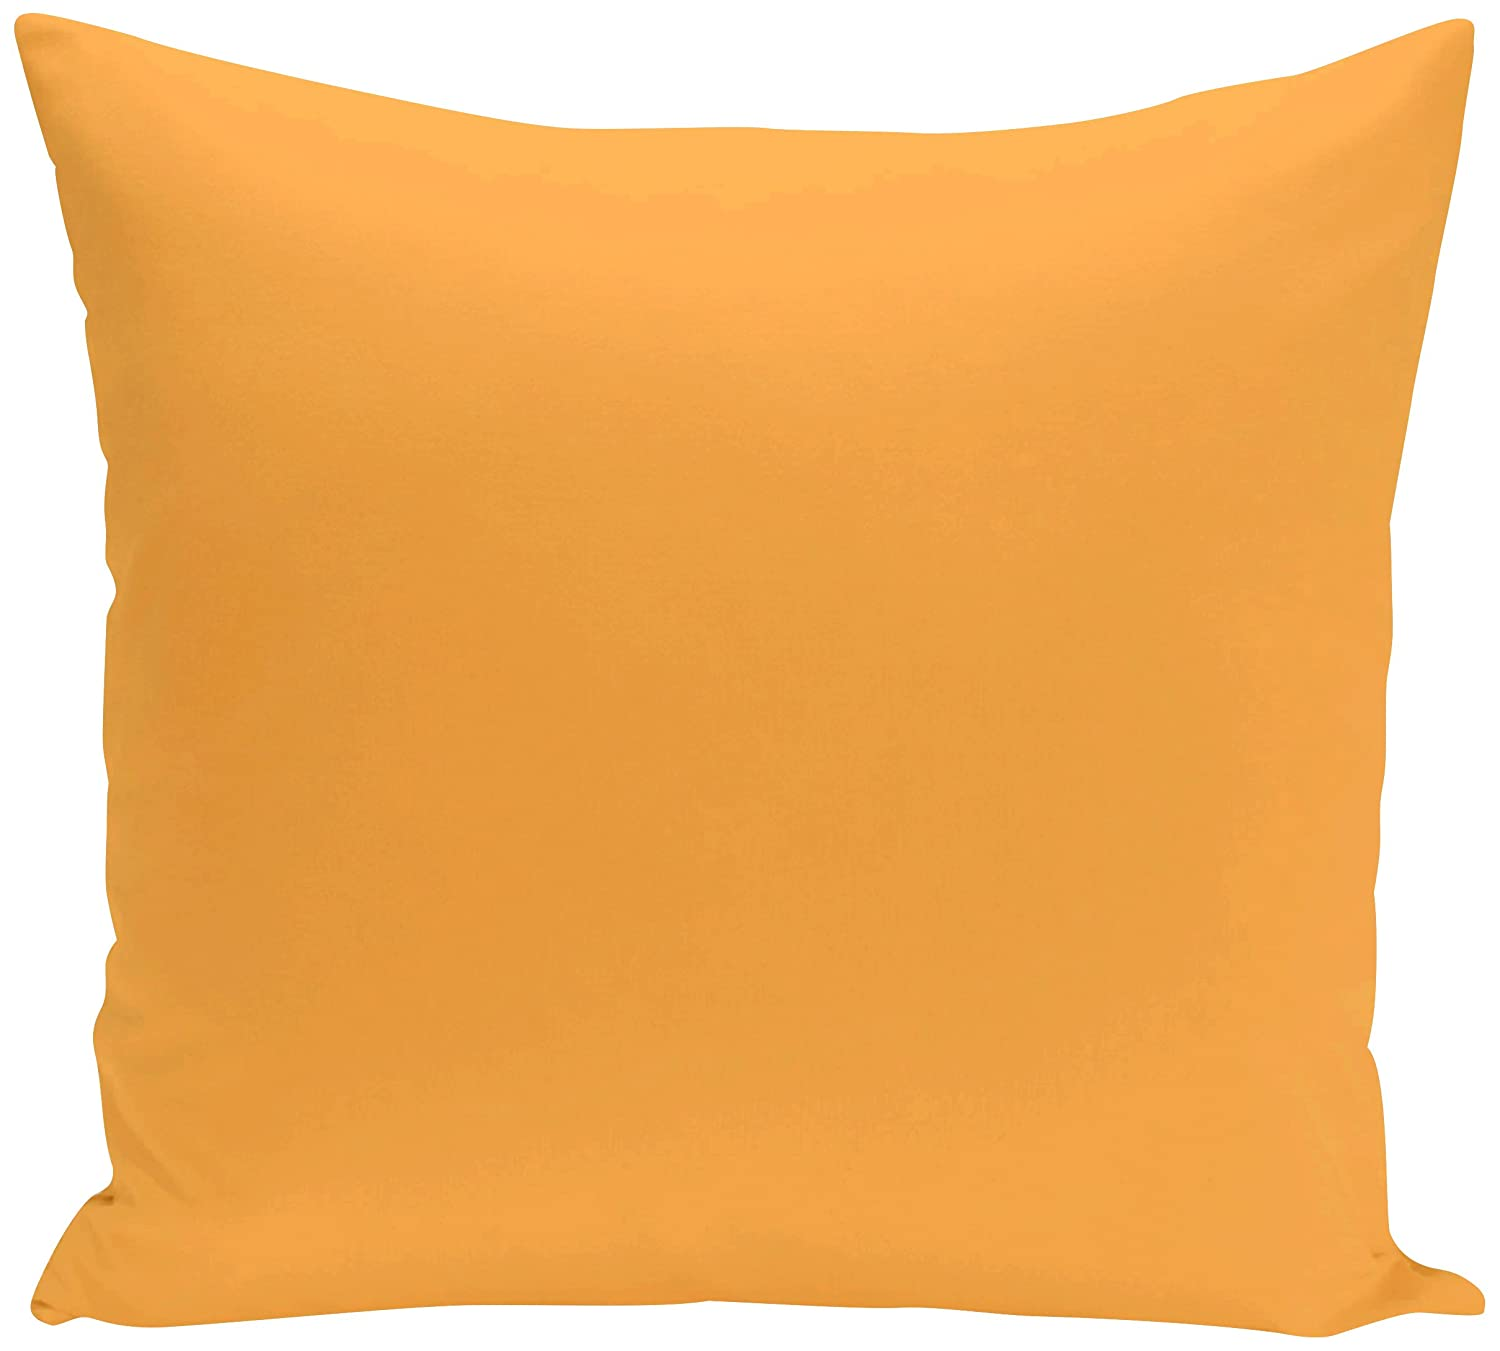 E by design PSOYE8-20 20 x 20-inch Solid Print Pillow Yellow 20x20,